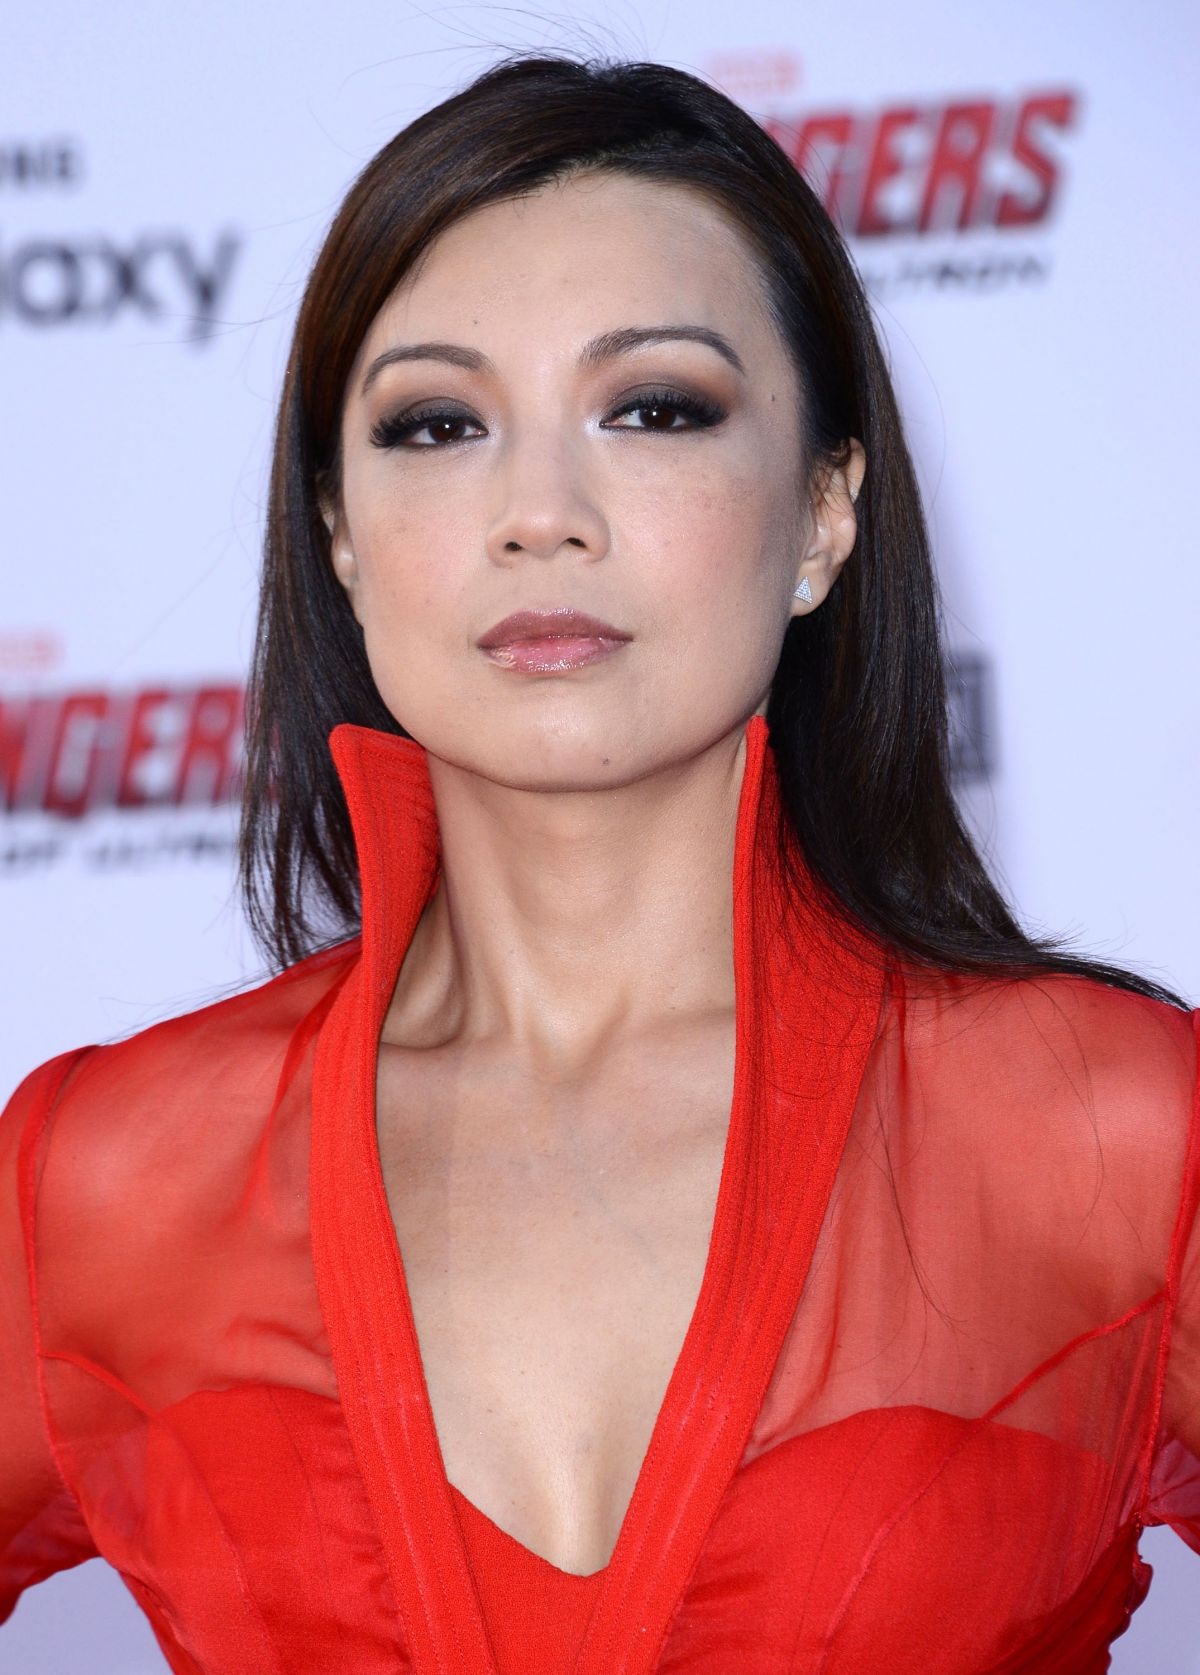 Ming-Na Wen Archives - Page 3 of 4 - HawtCelebs - HawtCelebs